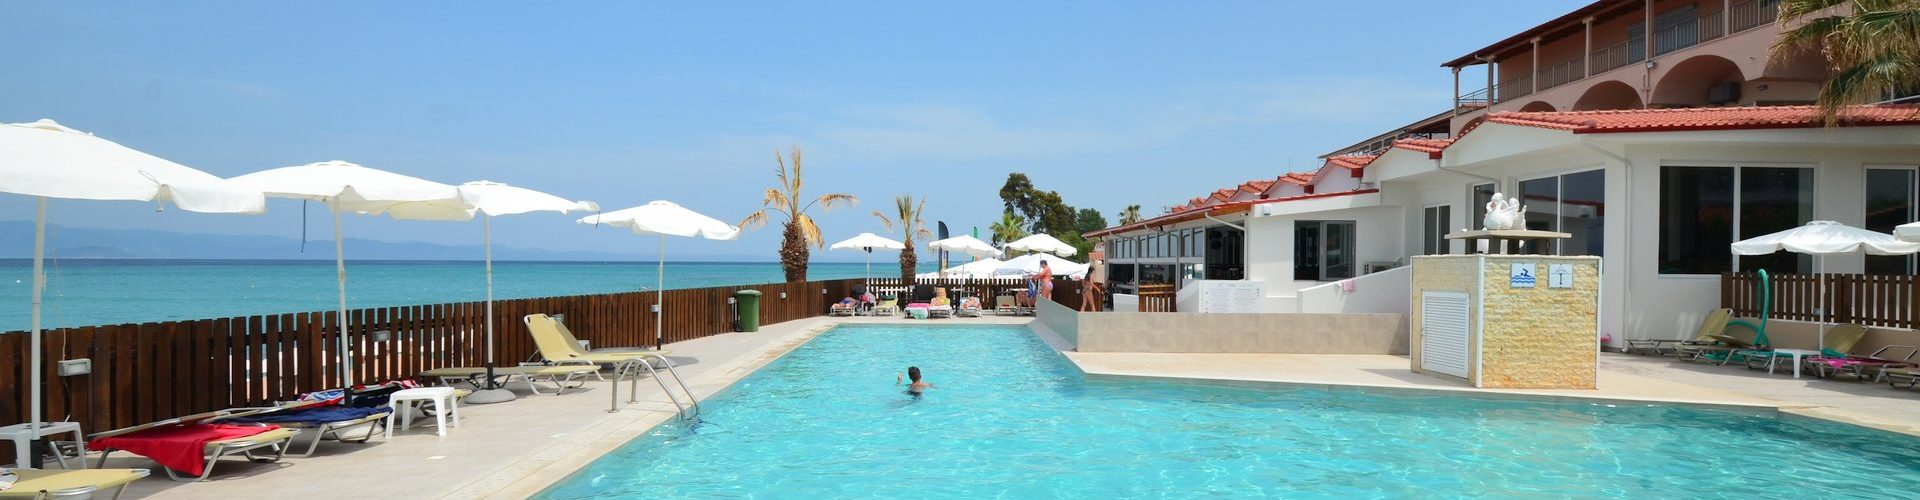 Sousouras Hotel Pool 11